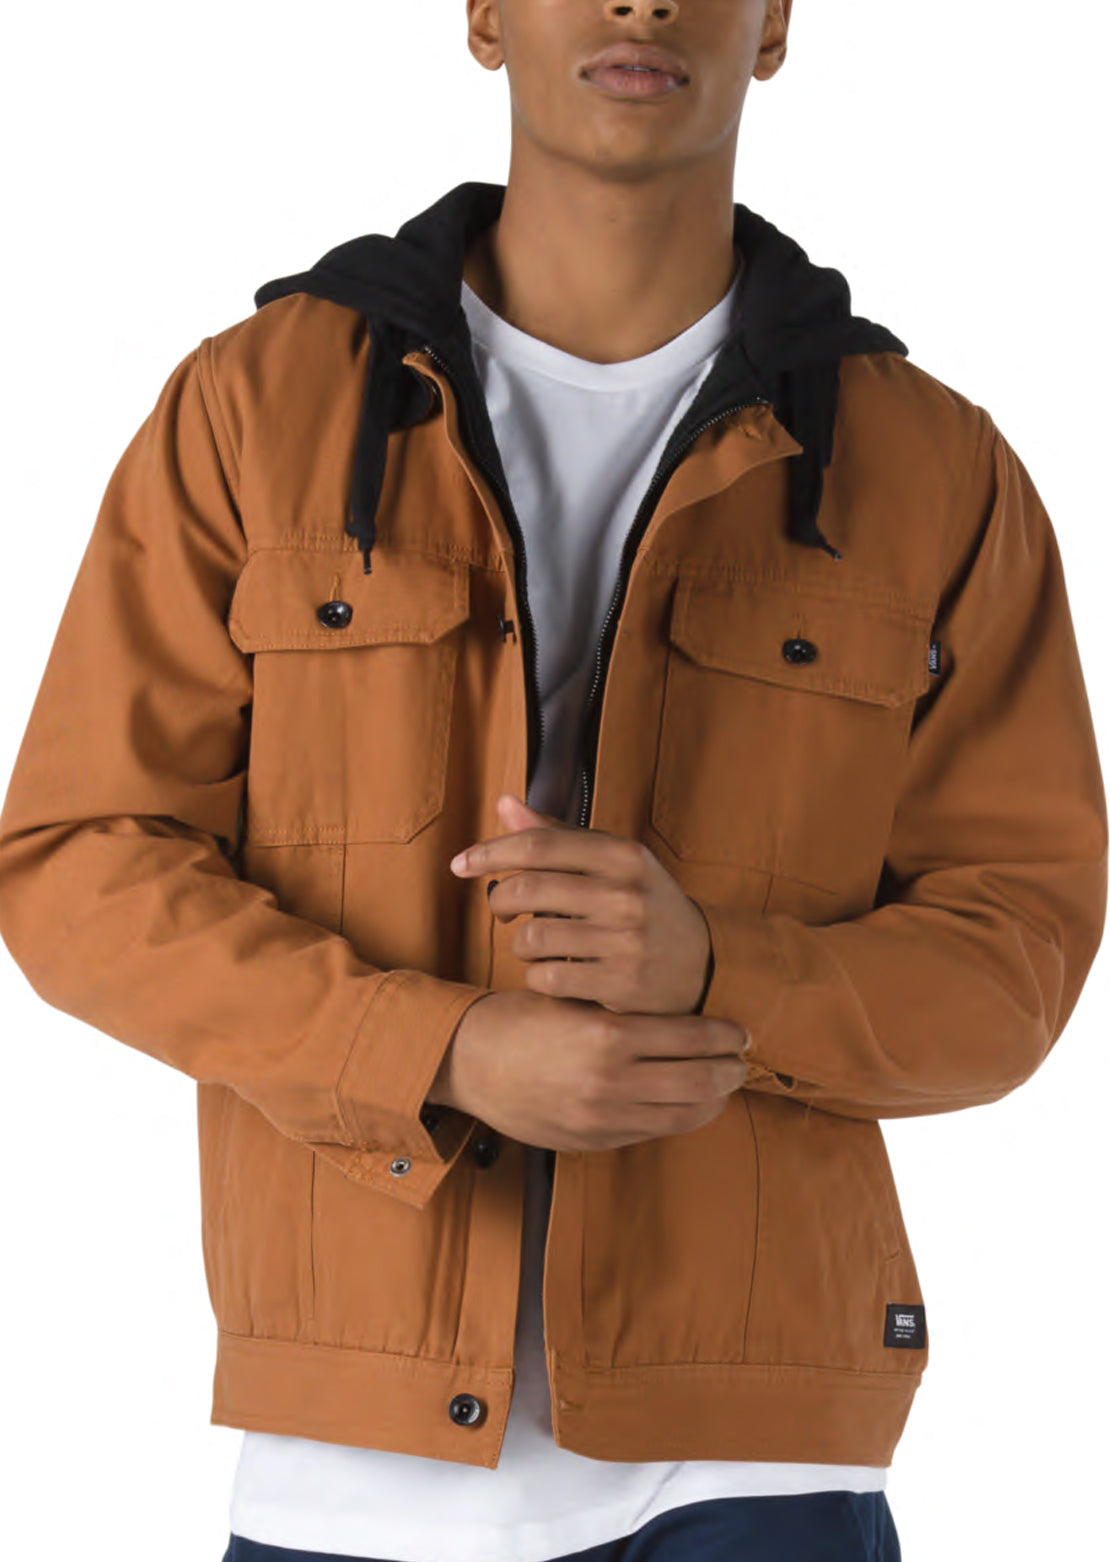 Vans Men's Precept Hooded Trucker Jacket Argan Oil